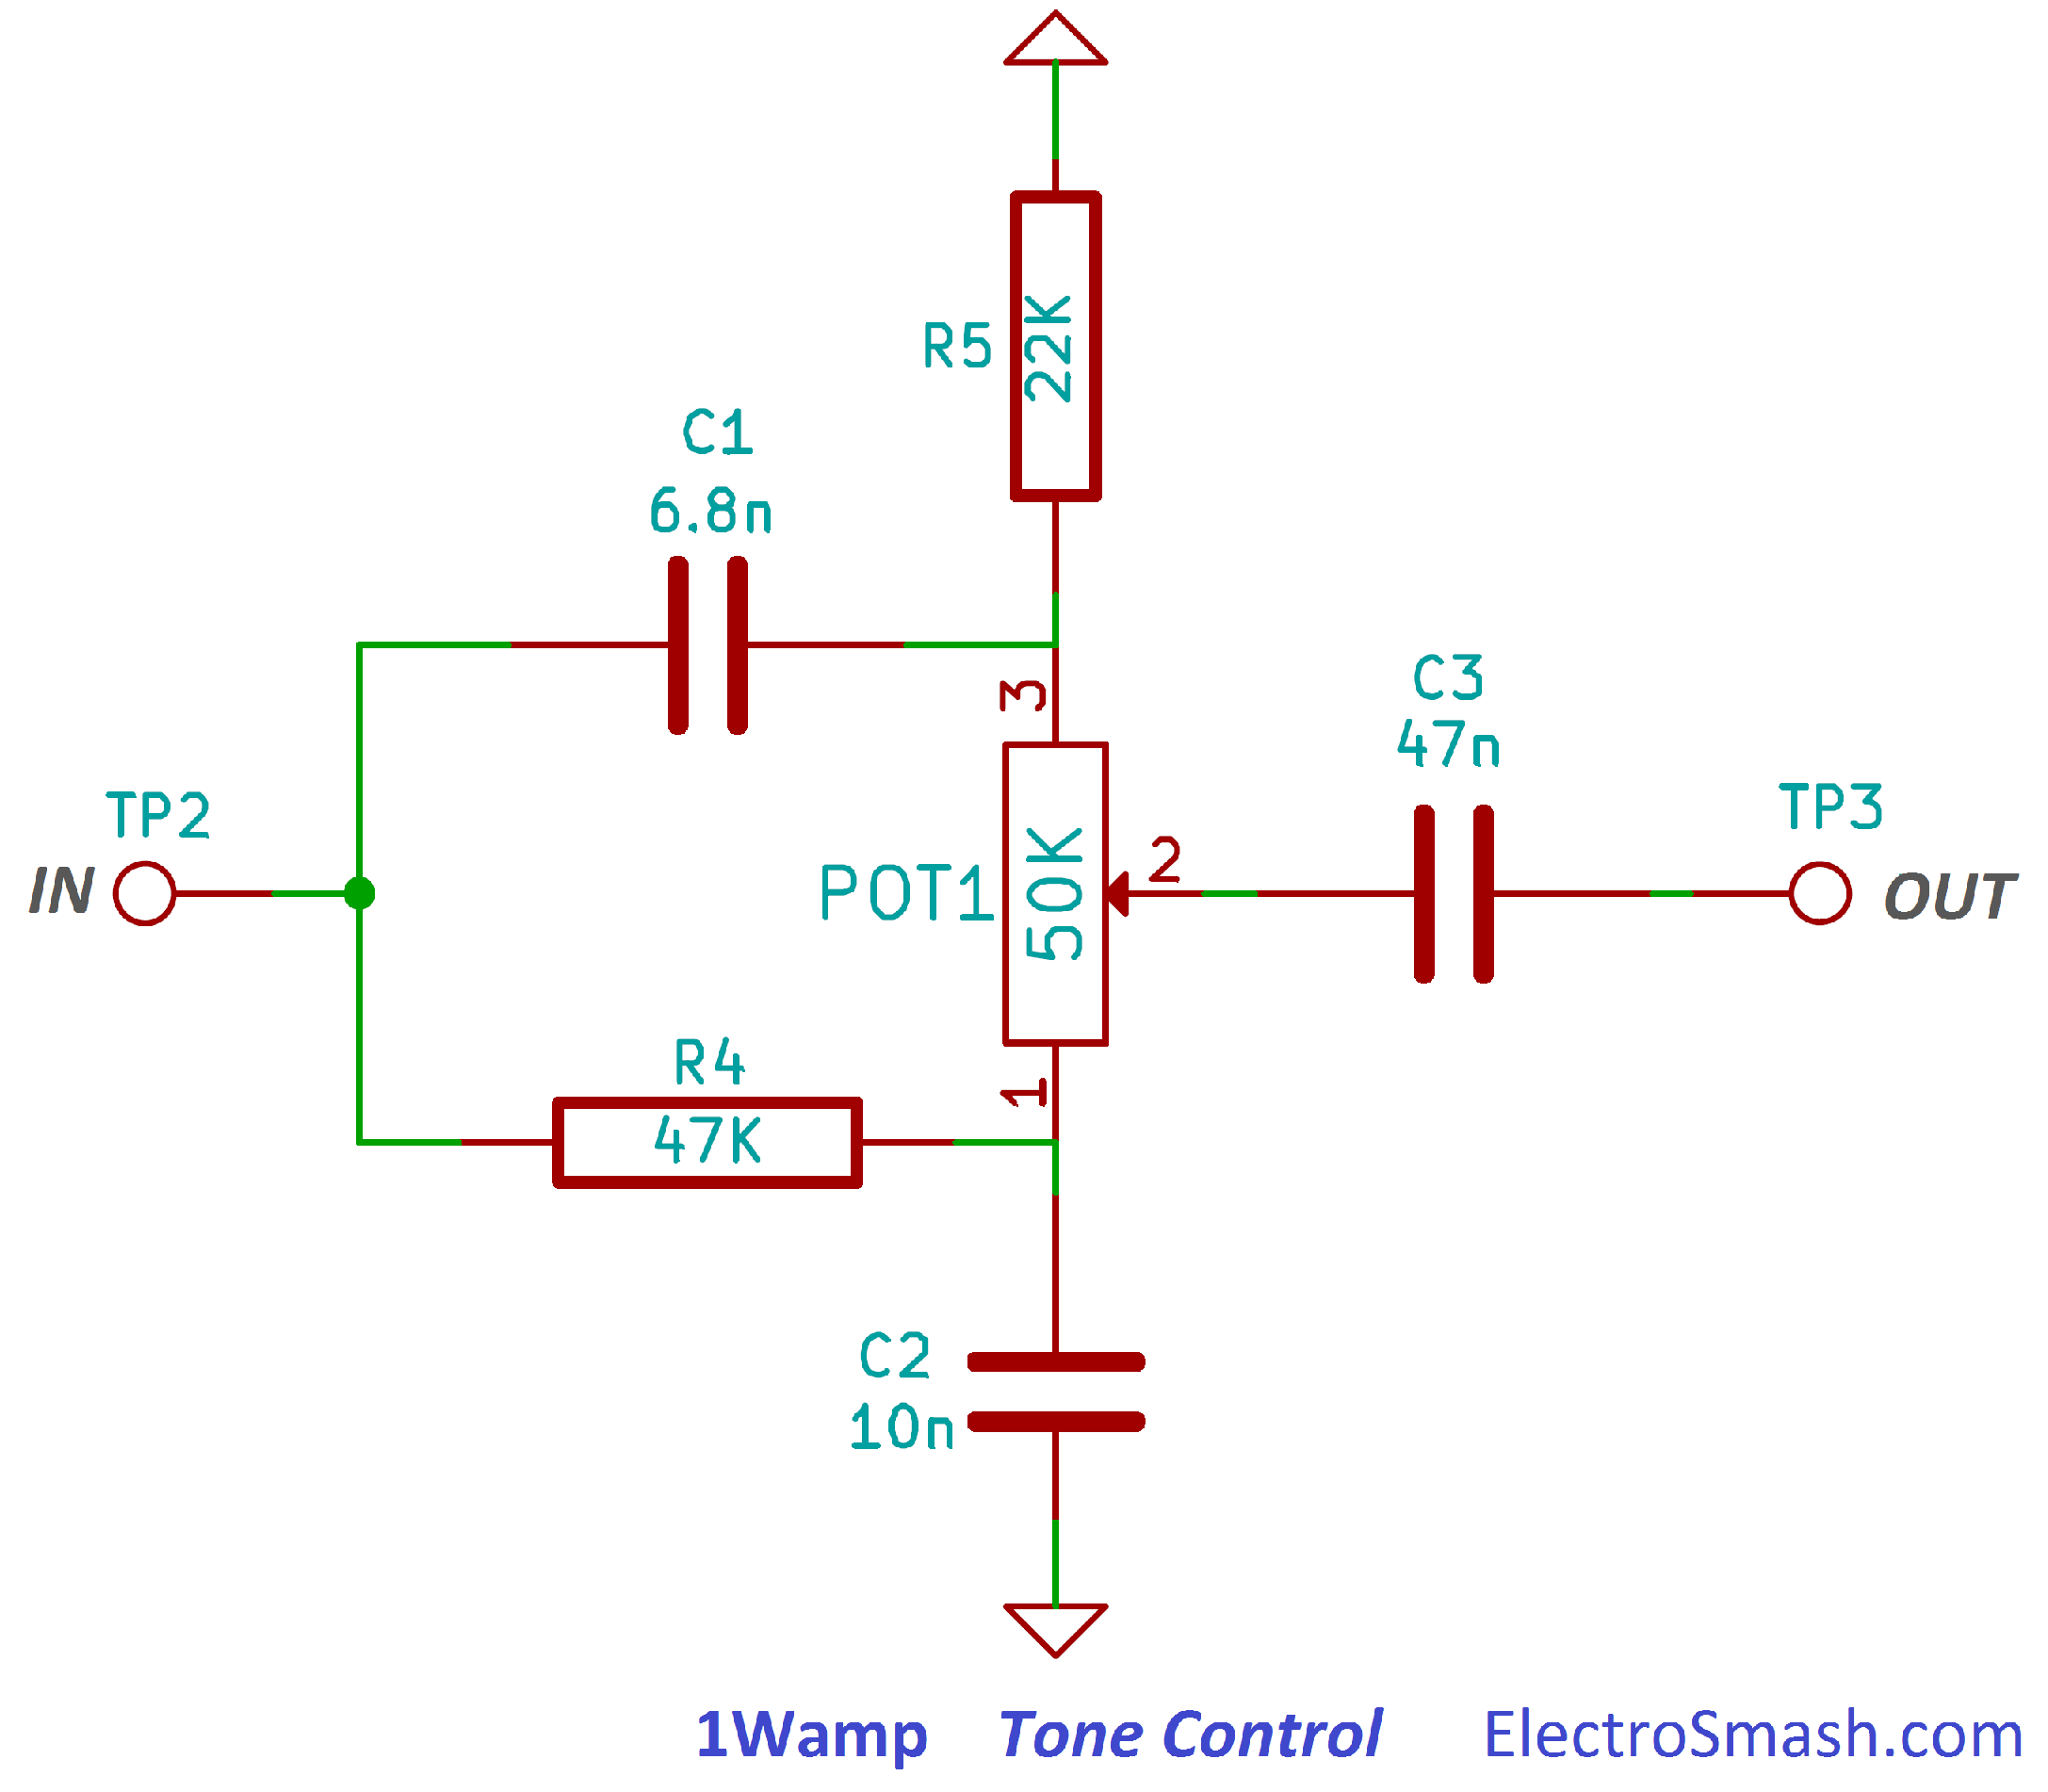 hight resolution of 2002 gl1800 wiring diagram best wiring library1wamp tone control resize